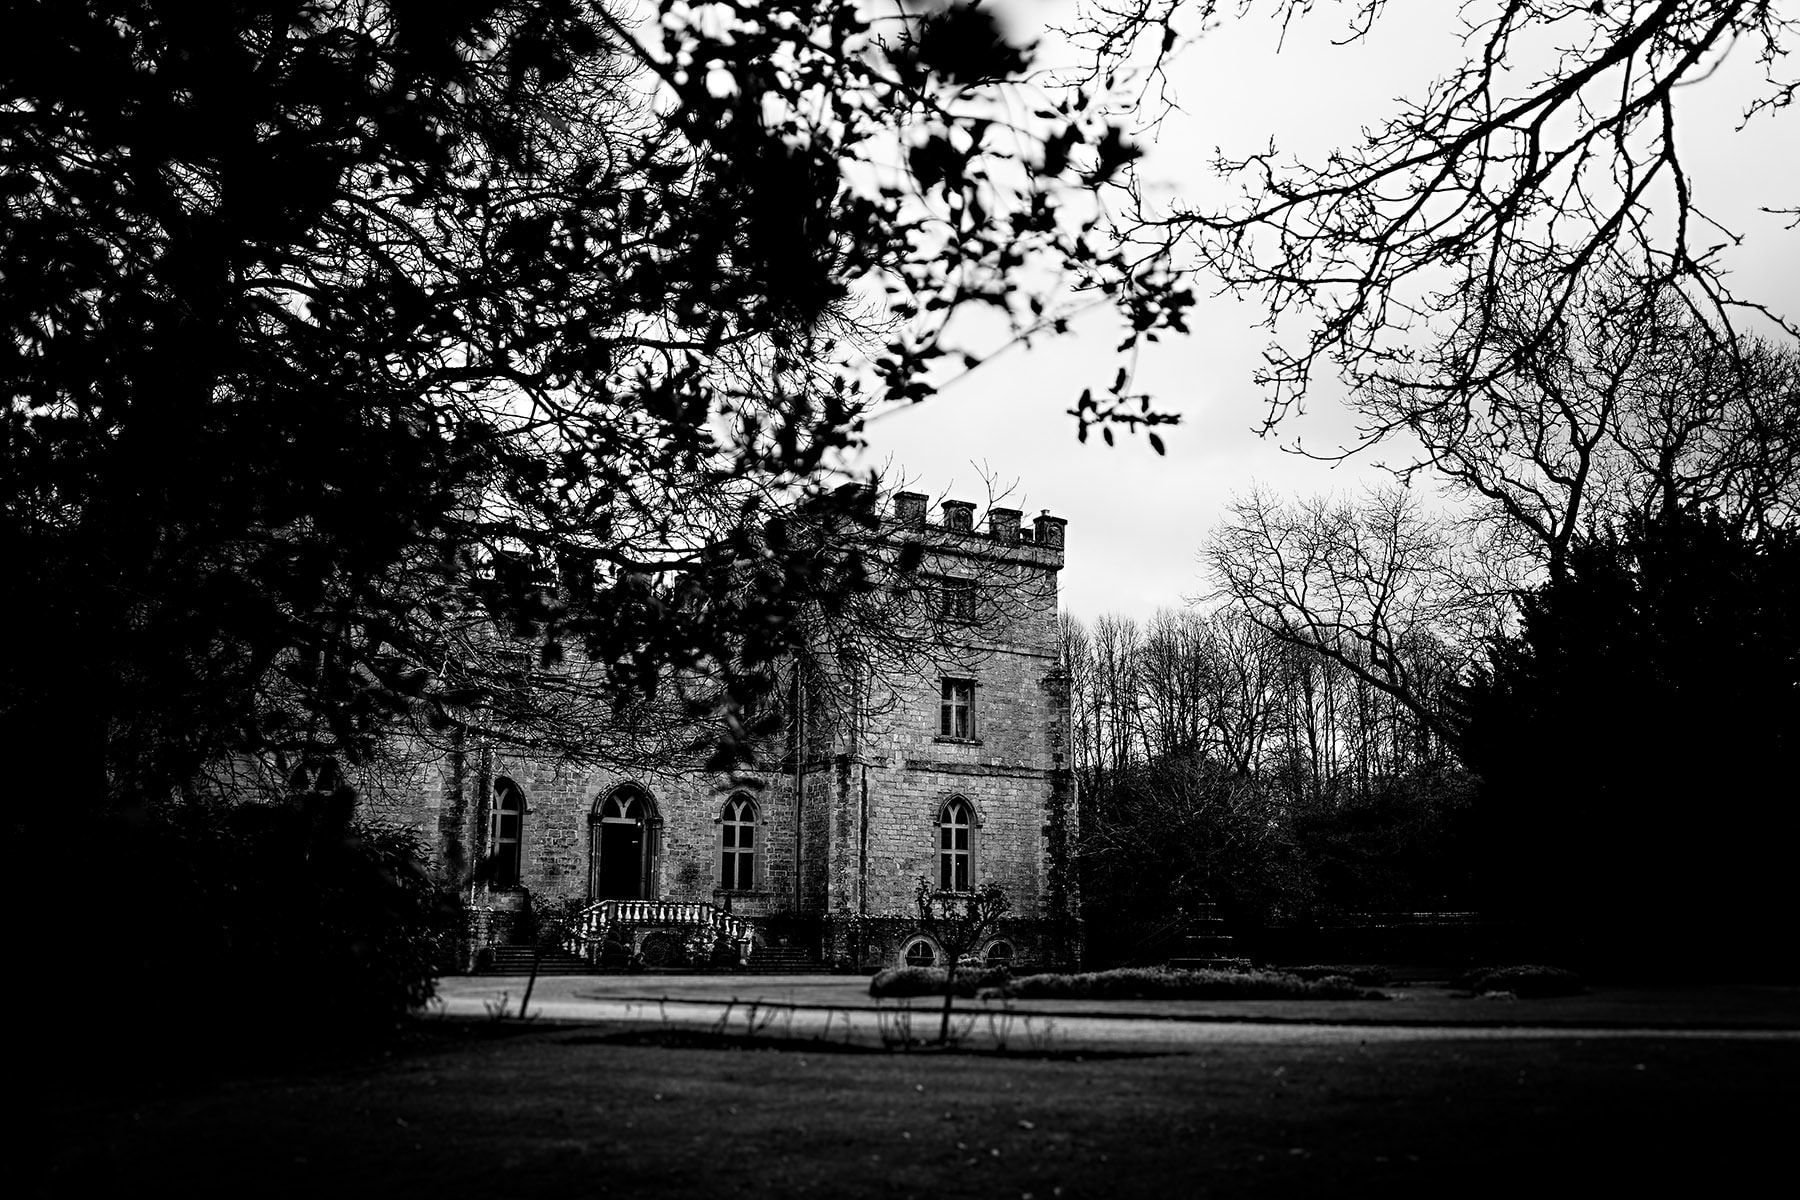 a picture in black and white of clearwell castle amongst the trees